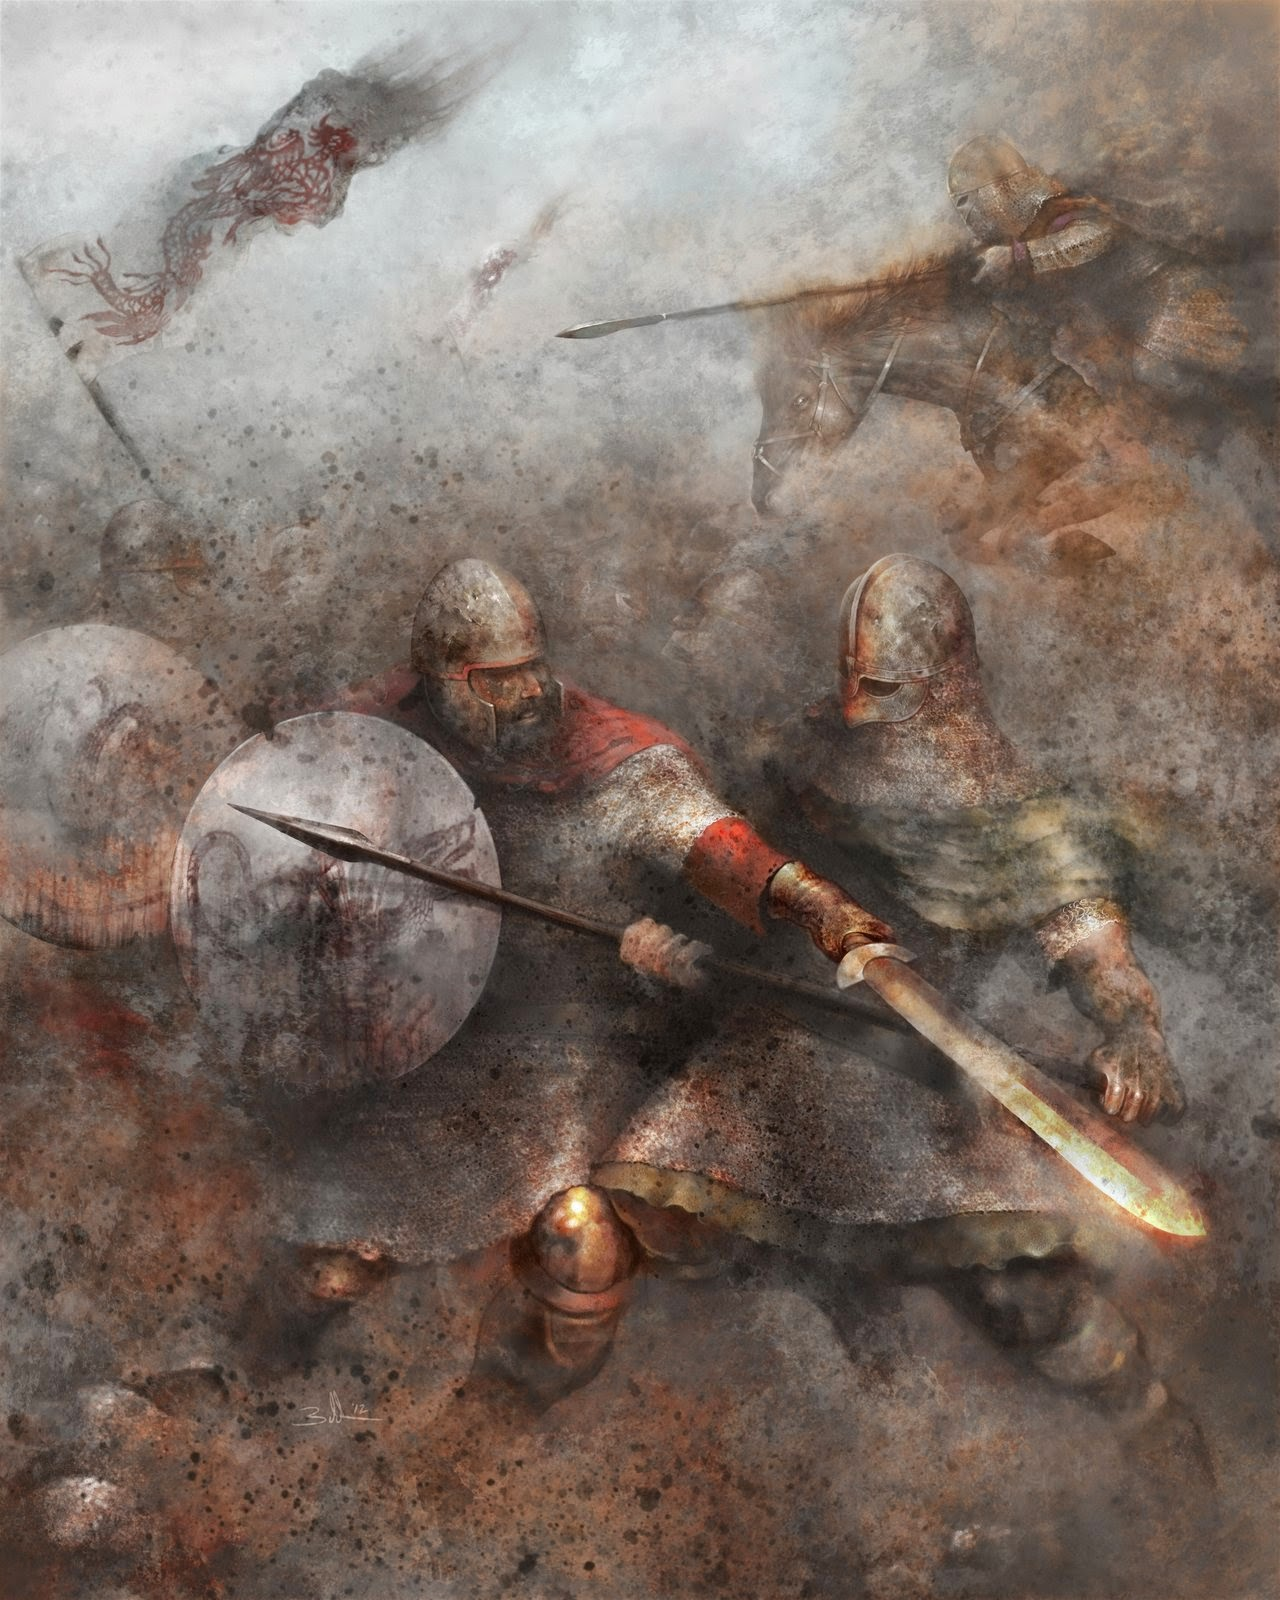 an analysis of the tales of the king arthur King arthur literary analysis research paper king arthur was a british king believed (by some) to have lived in the late fifth and early sixth centuries unfortunately, this is not so with the arthur in this tale.